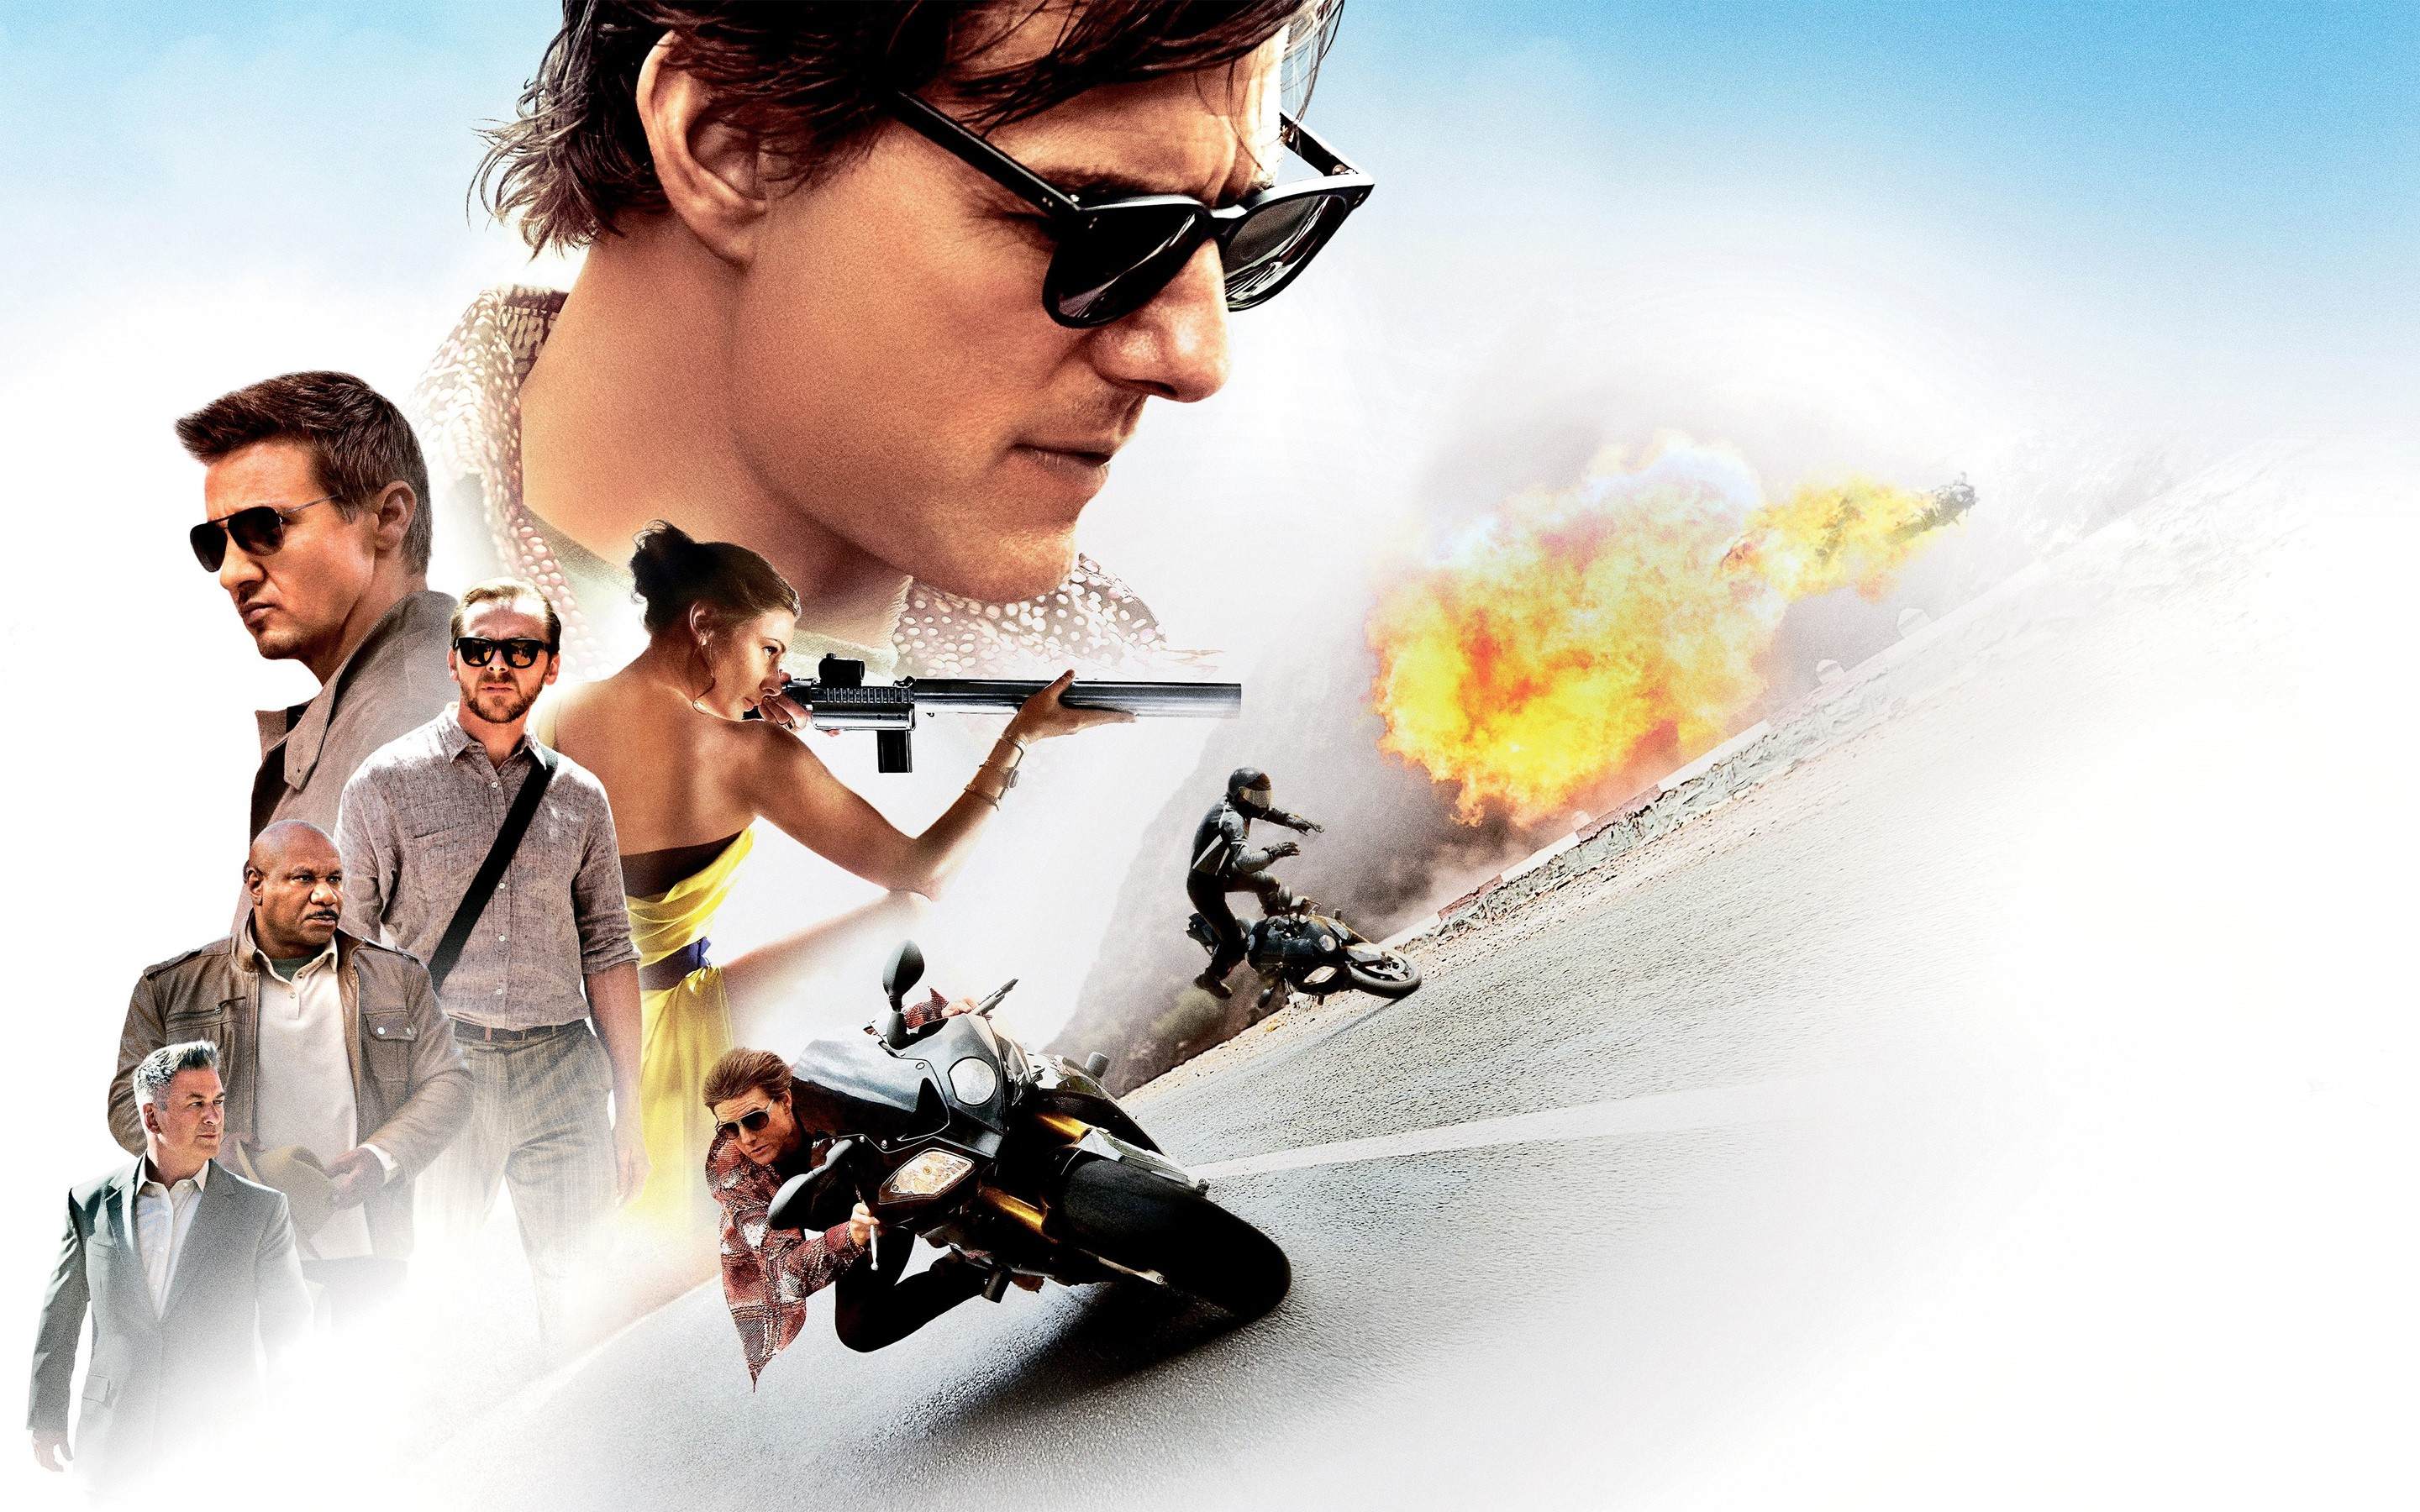 1920x1080 mission impossible rogue nation laptop full hd - Mission impossible wallpaper ...